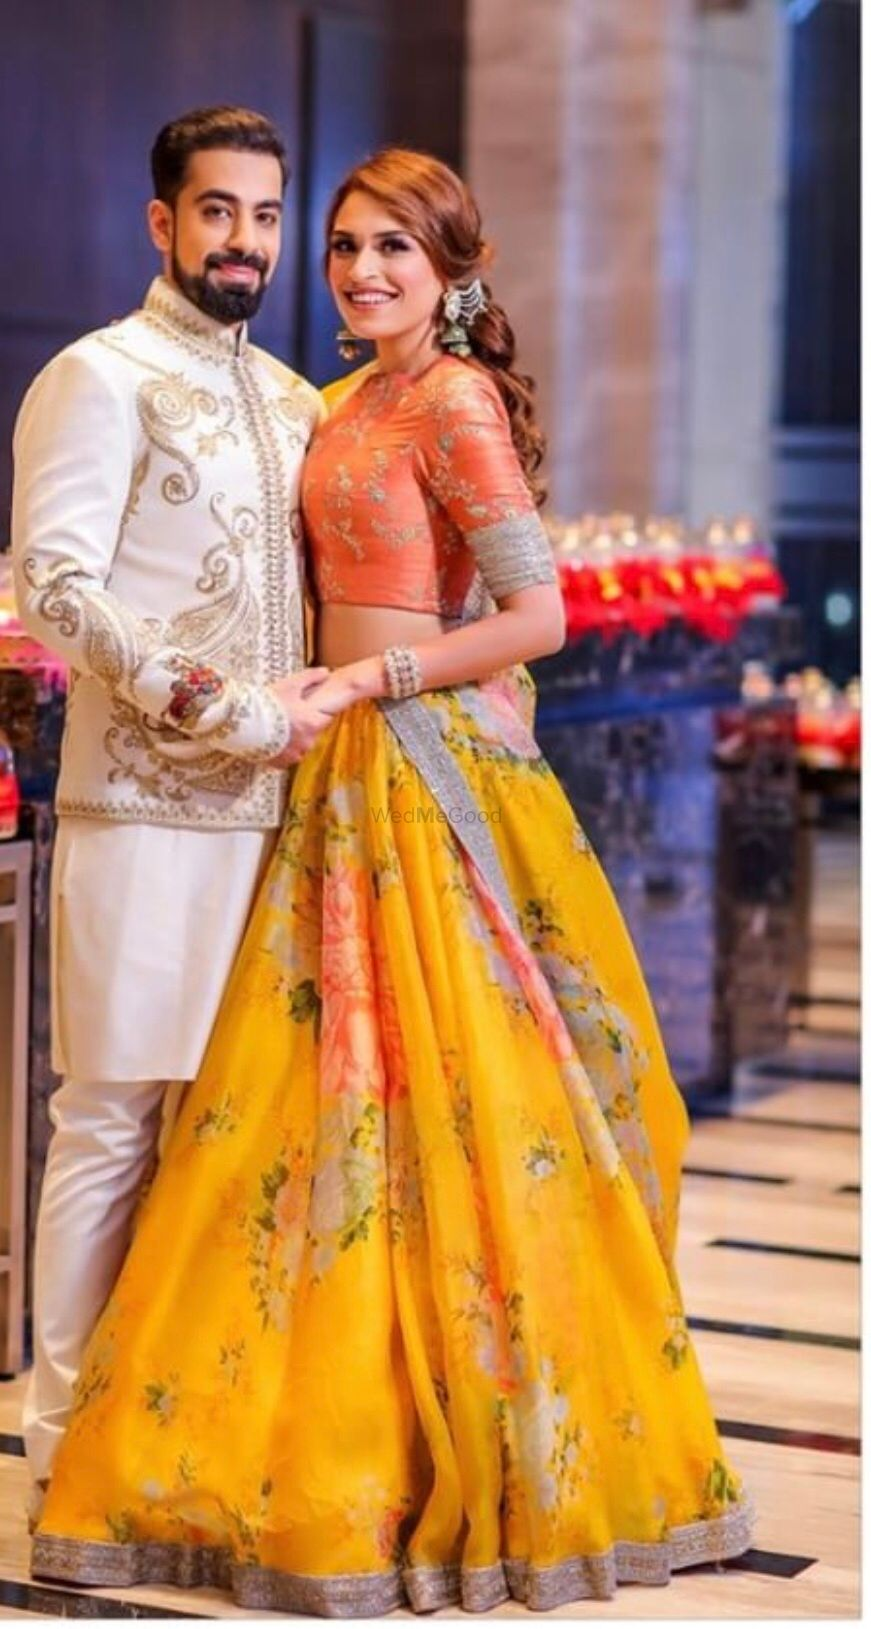 Photo of A bride and groom pose on their mehendi day